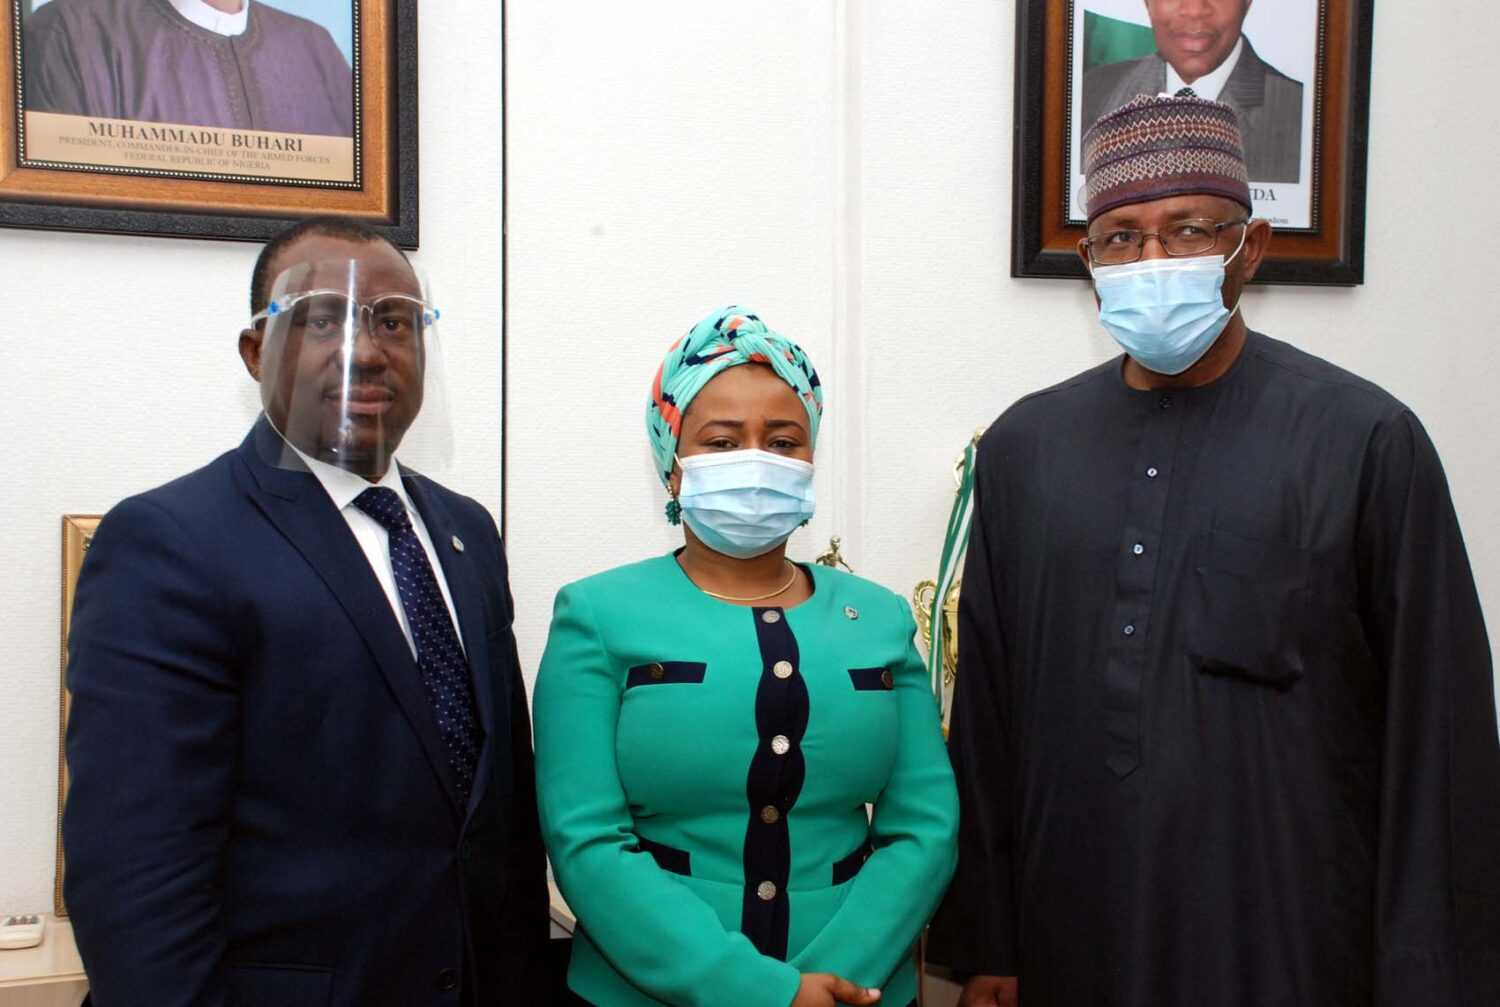 L-R,  Chief Executive Officer, Stanbic IBTC Bank Dr Demola Sogunle, Country Head Public Sector Stanbic IBTC Bank Hajia Hauwa Bello and Director General, Securities and Exchange Commission Mr Lamido Yuguda during a Meeting between The SEC and Stanbic IBTC Bank in Abuja.